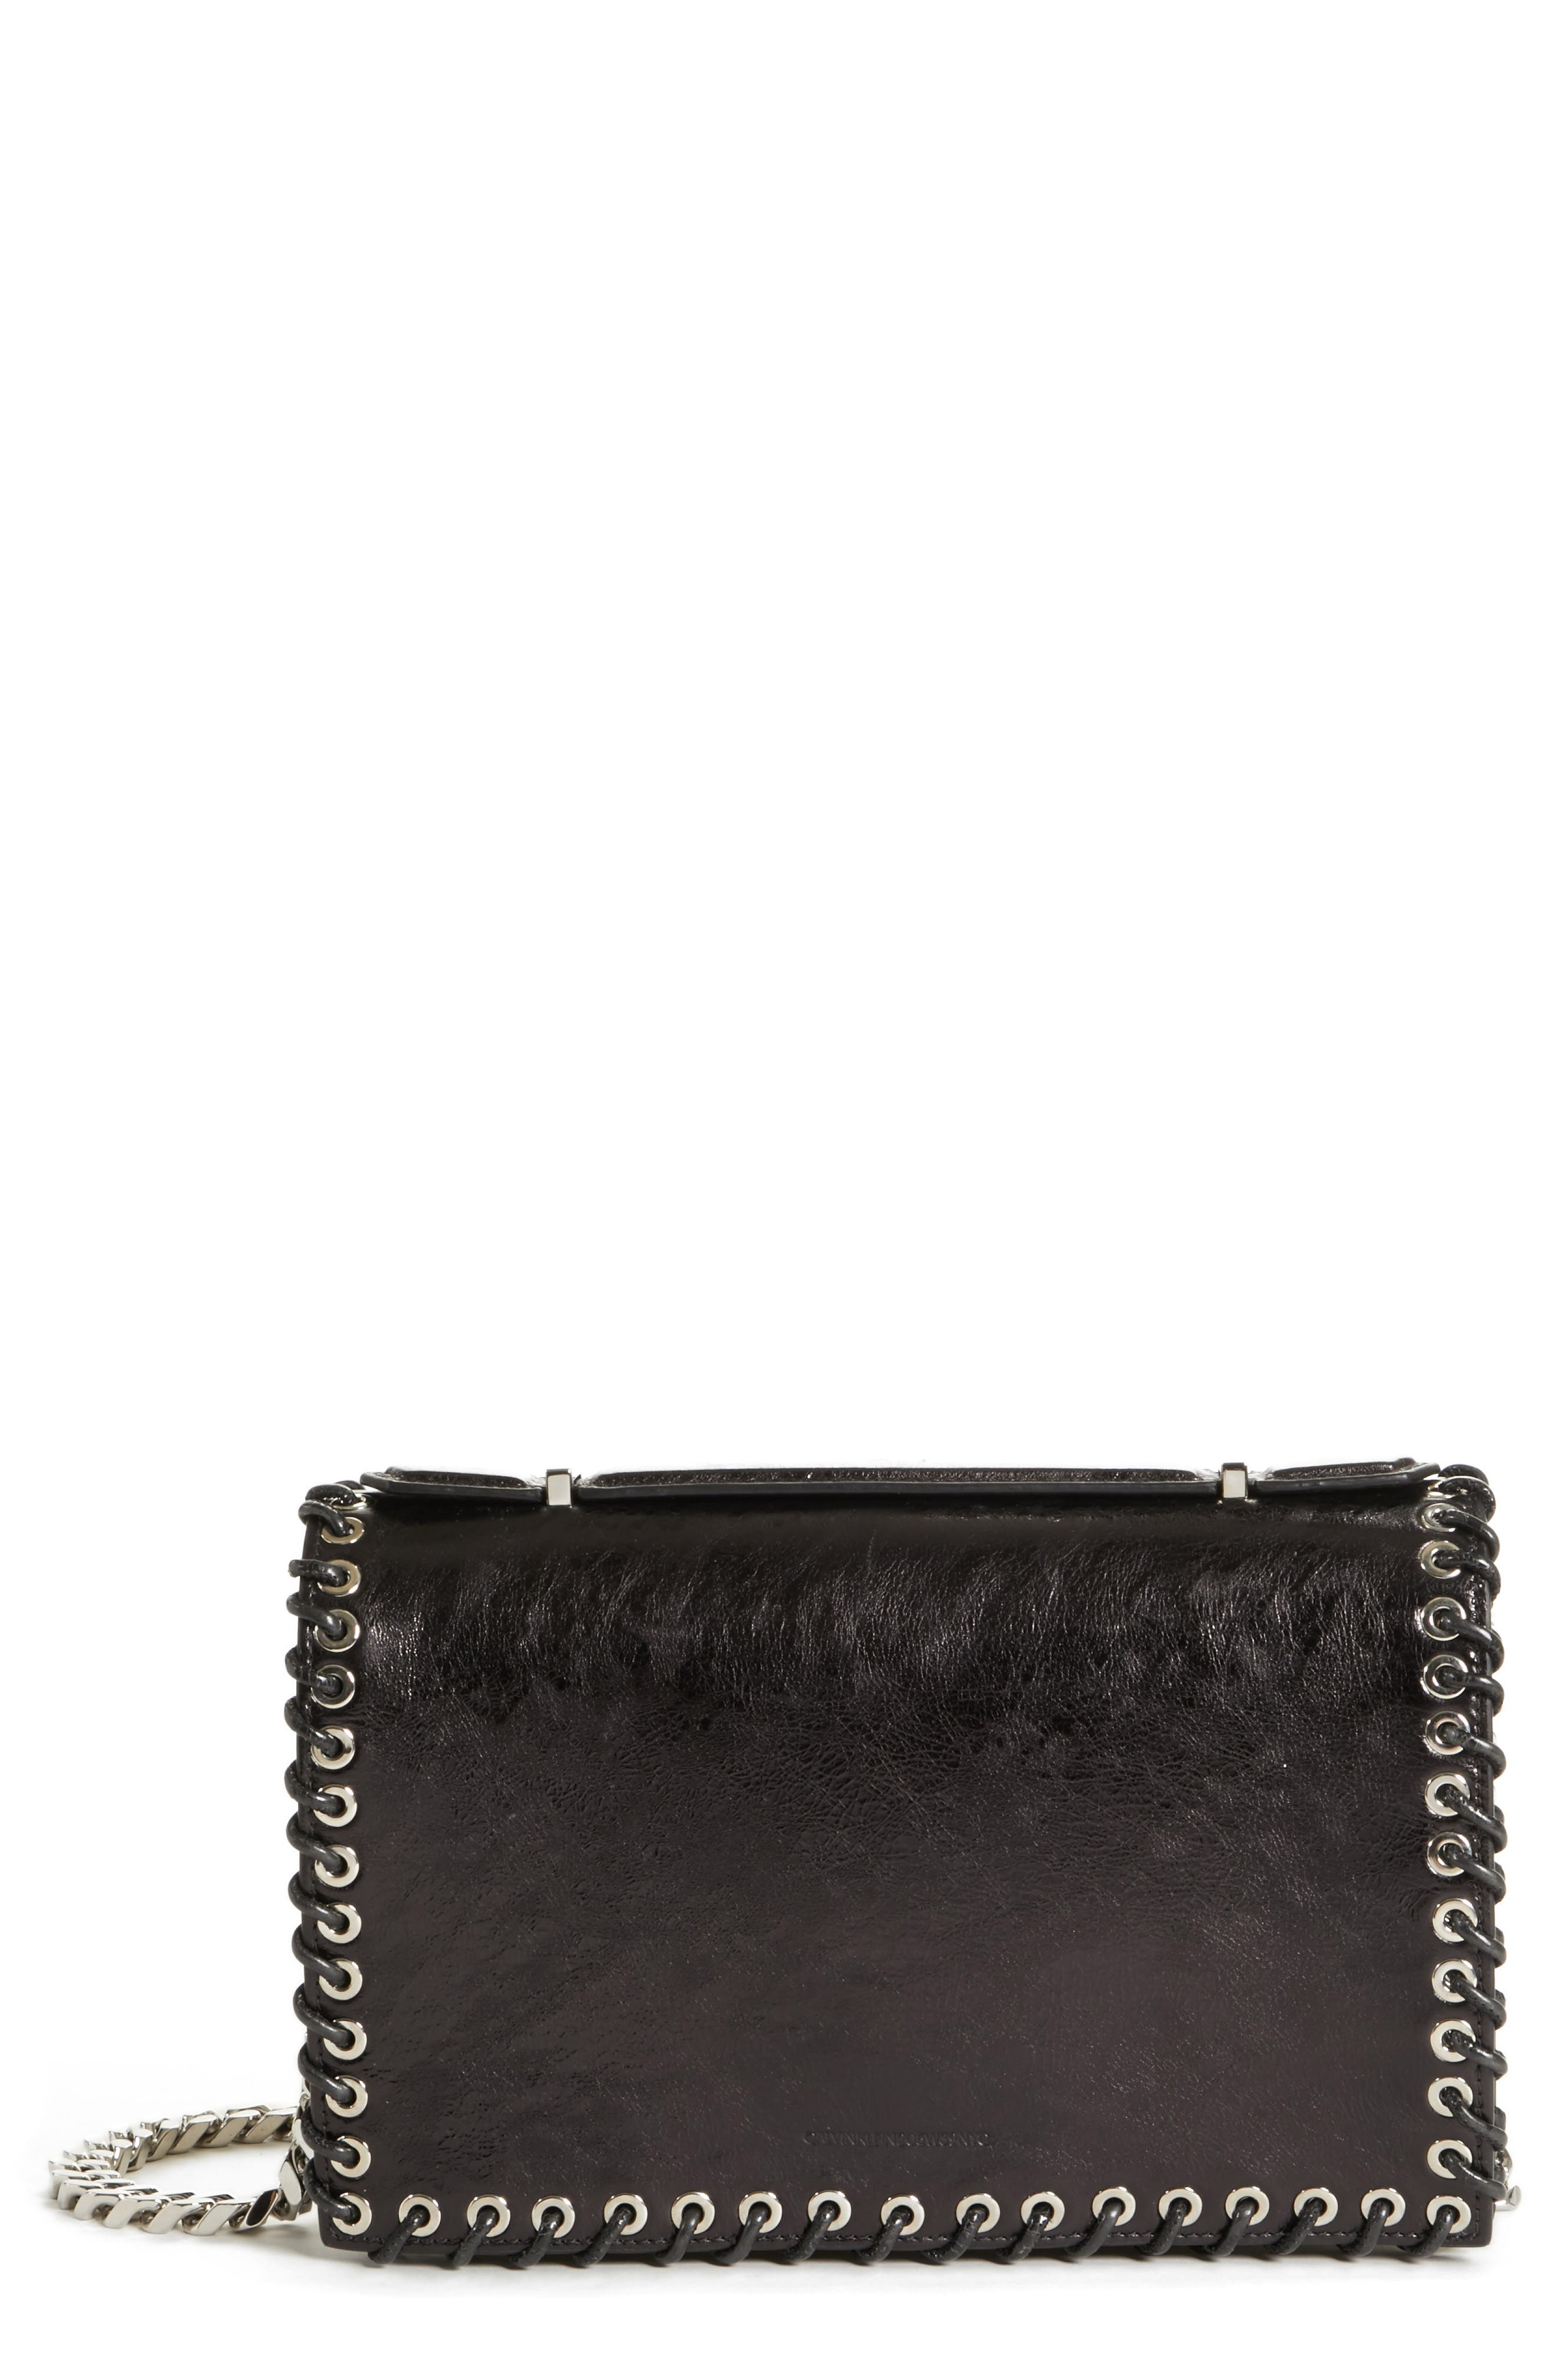 Alternate Image 1 Selected - CALVIN KLEIN 205W39NYC Whipstitch Leather Shoulder Bag